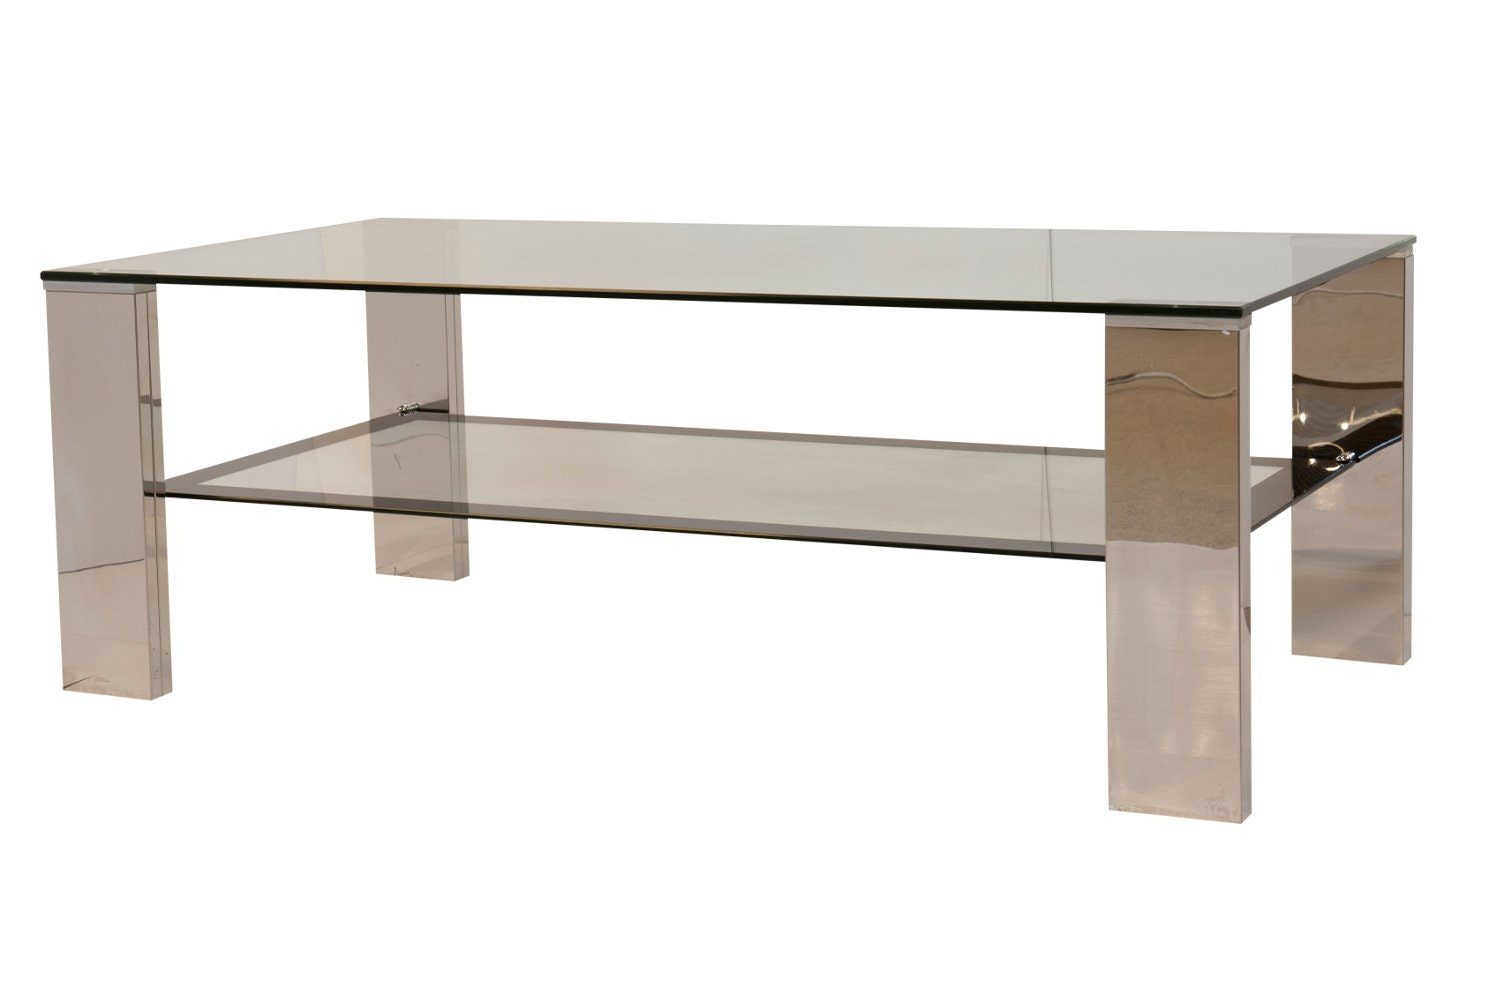 Neptune Kitchen Furniture Neptune Coffee Table Shop At Harvey Norman Ireland